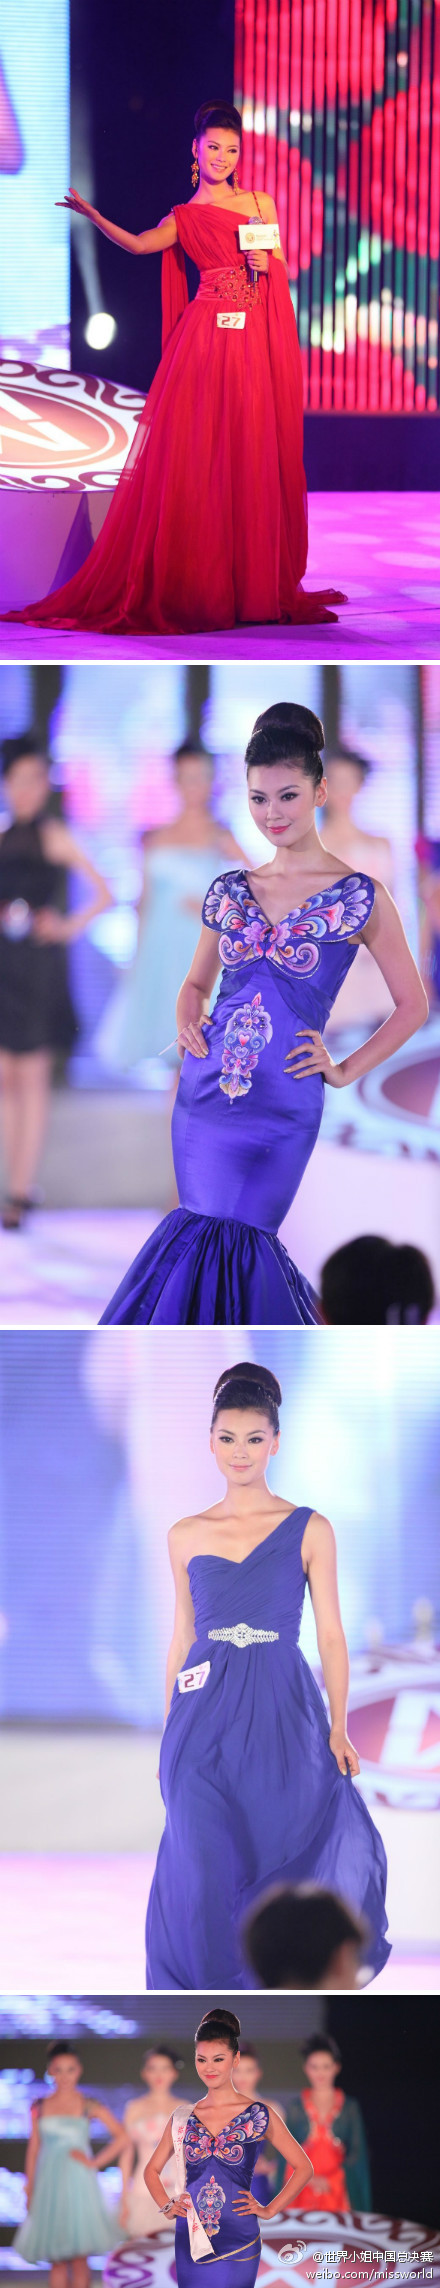 wenxia yu, miss world 2012.  - Página 11 66632212